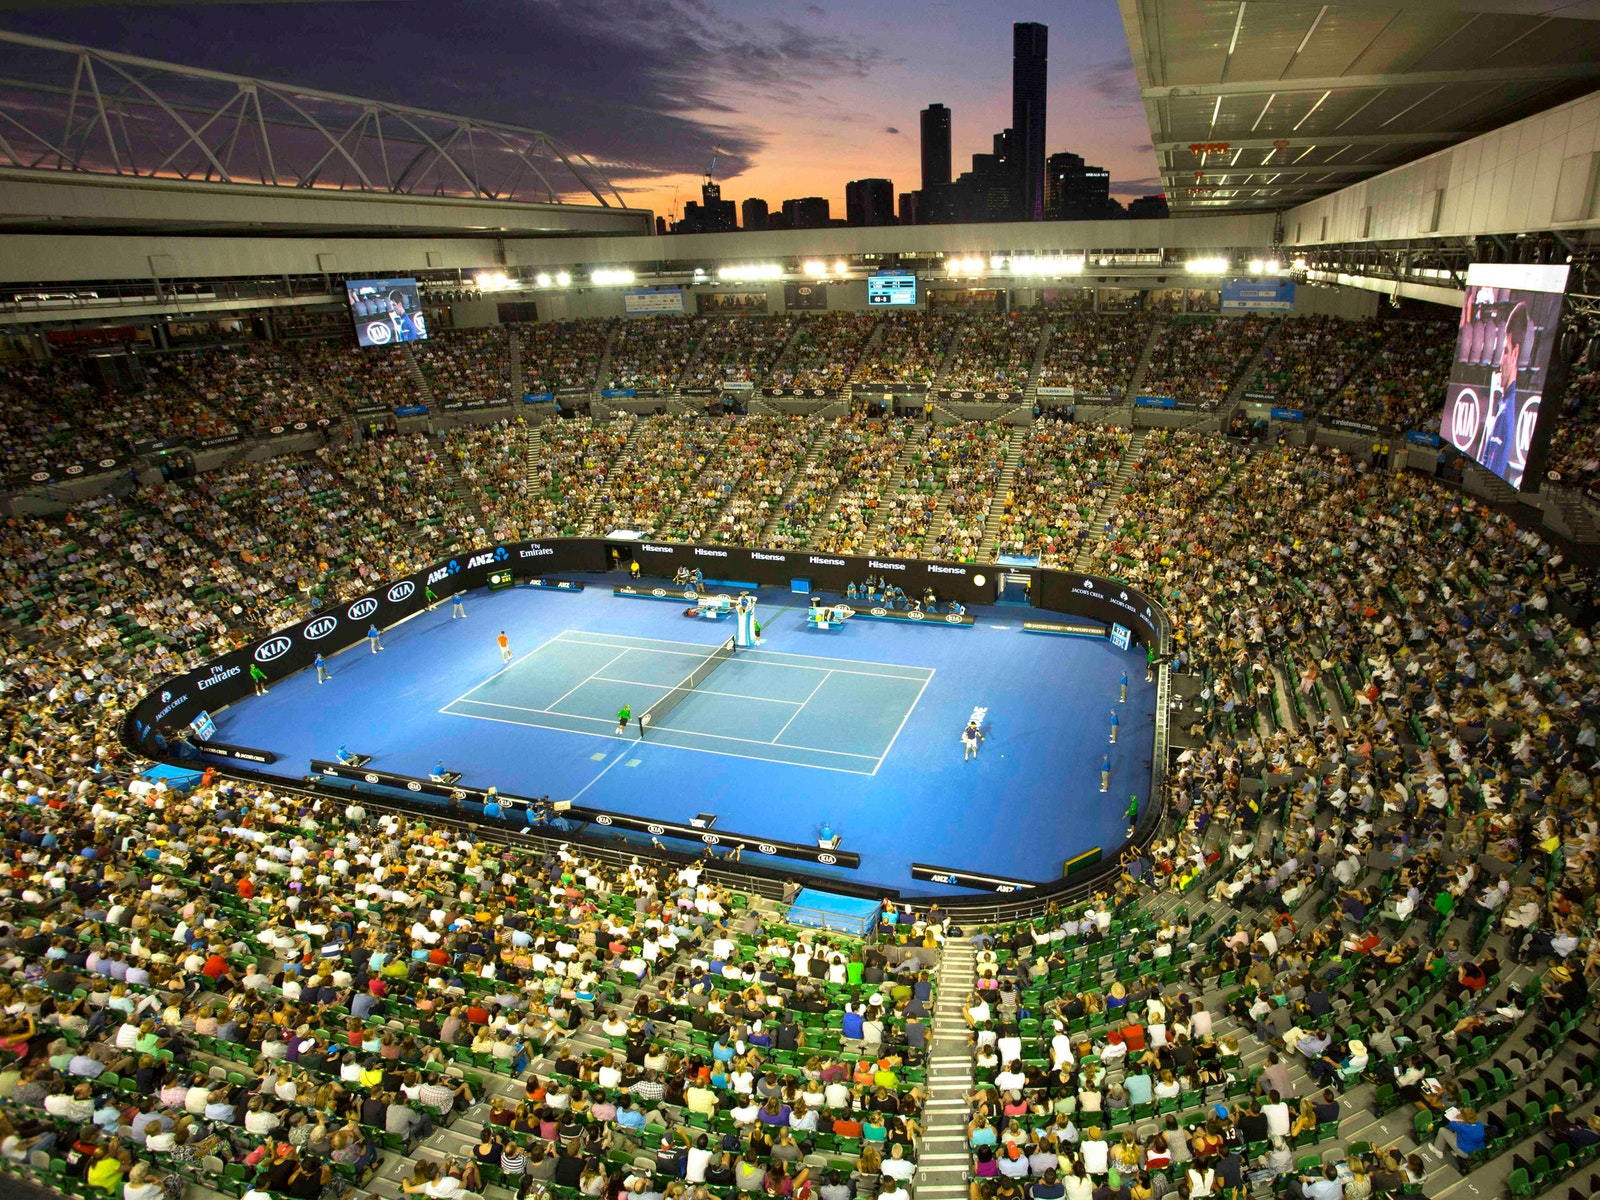 The world's best tennis players battle it out for the ultimate glory at Rod Laver Arena